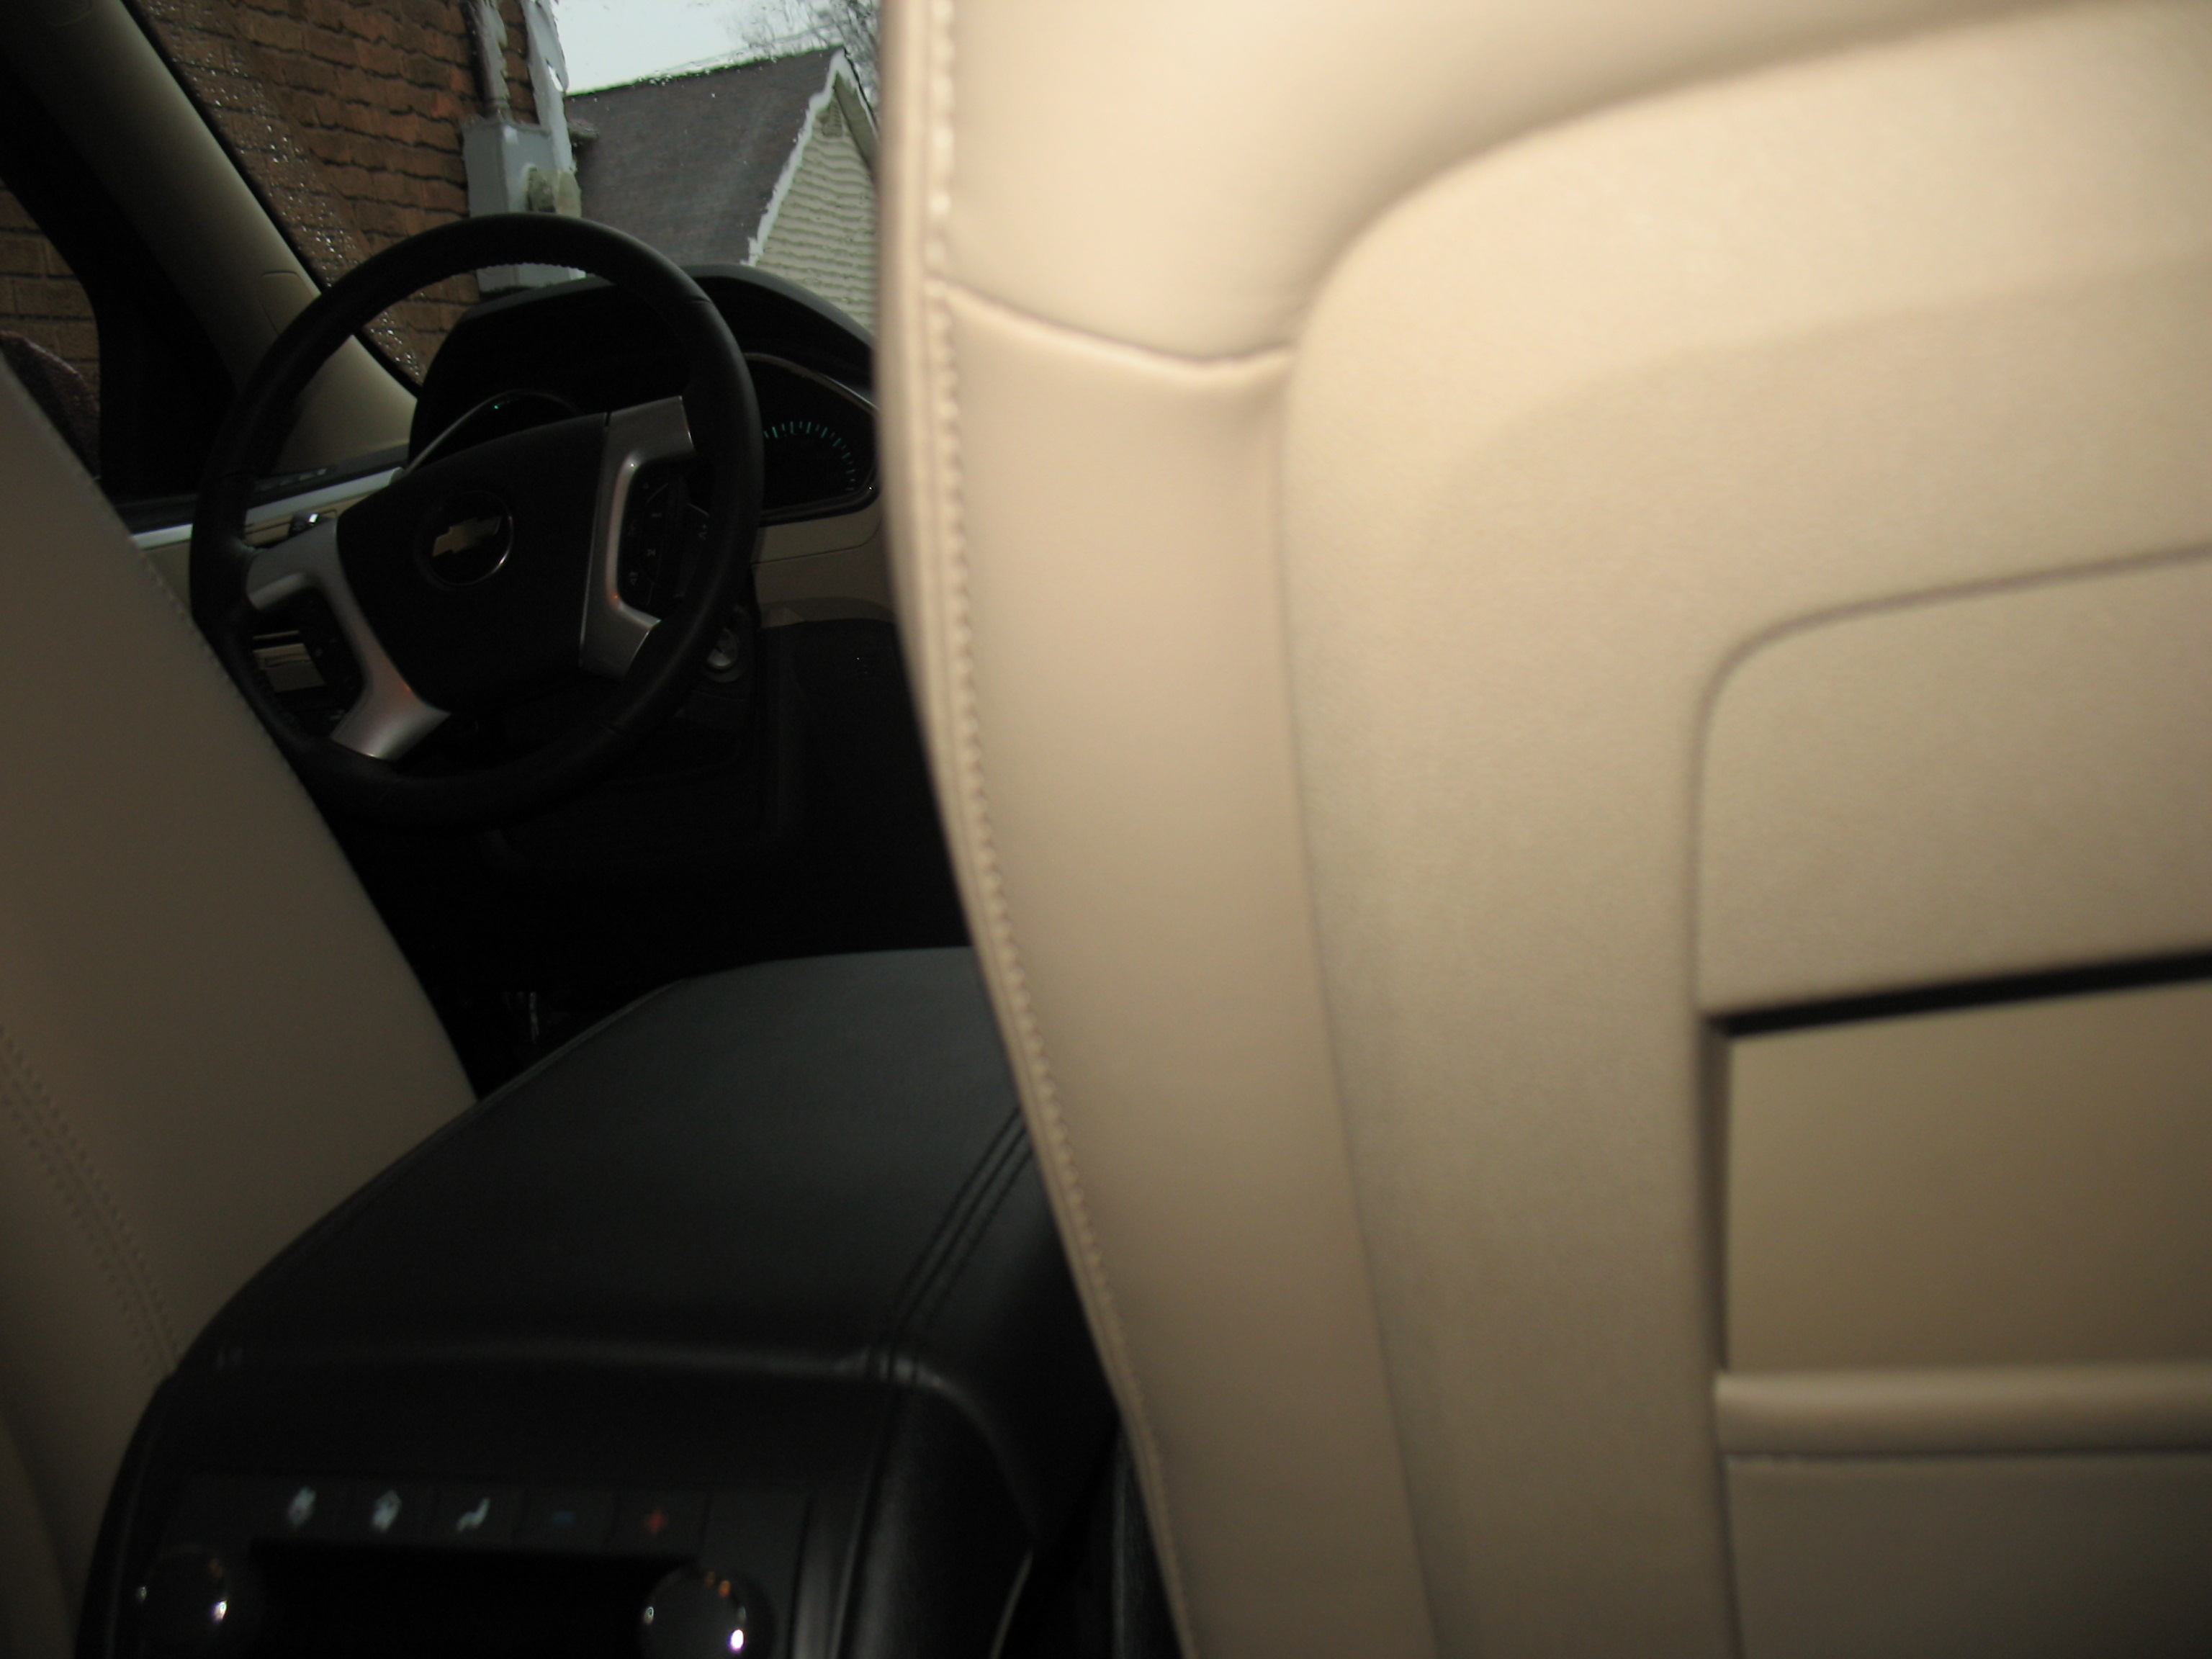 Chevy Traverse: The Preschool Point of View